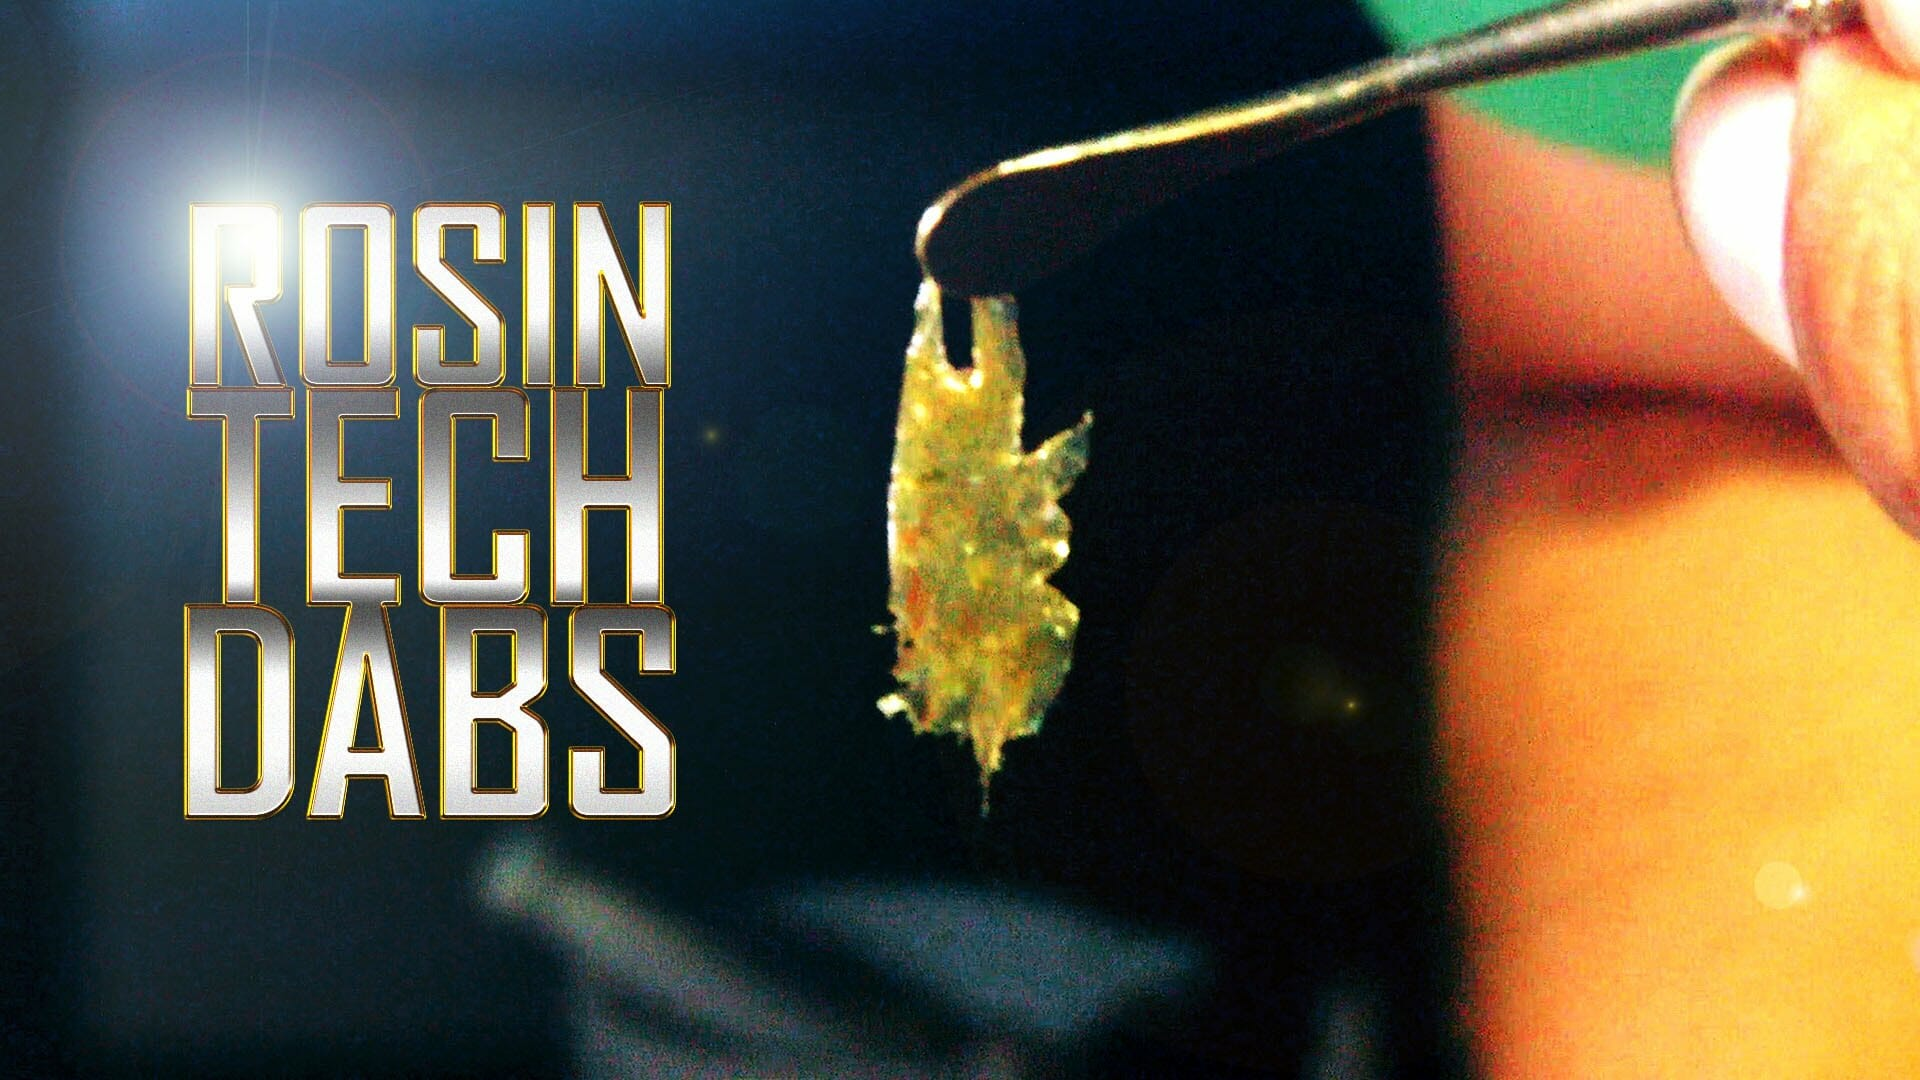 Shameless Weed Porn #15: Rosin Techno